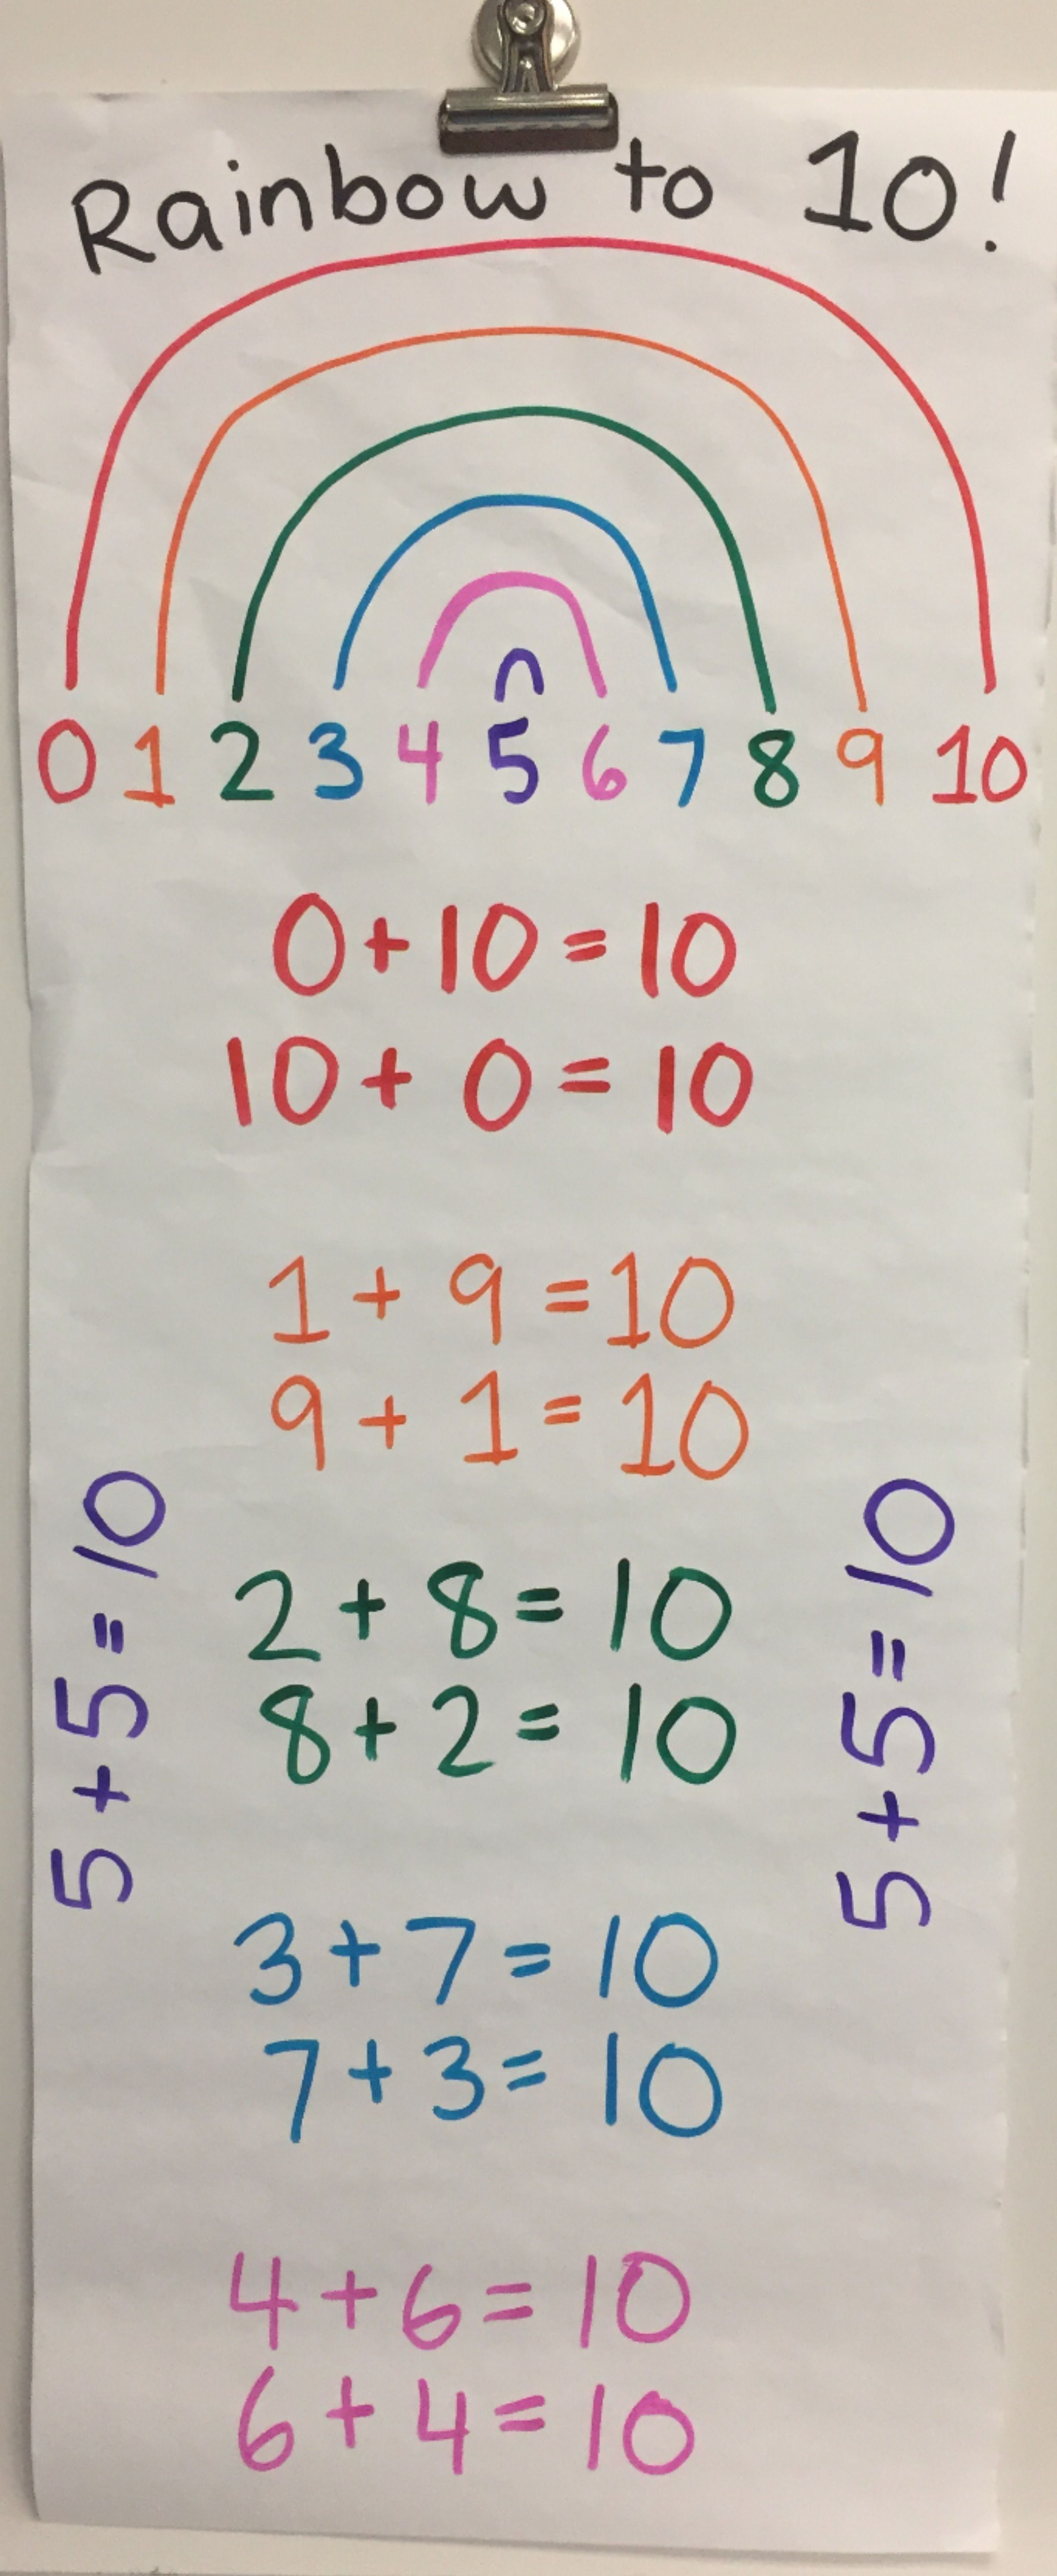 Rainbow To 10 Anchor Chart In